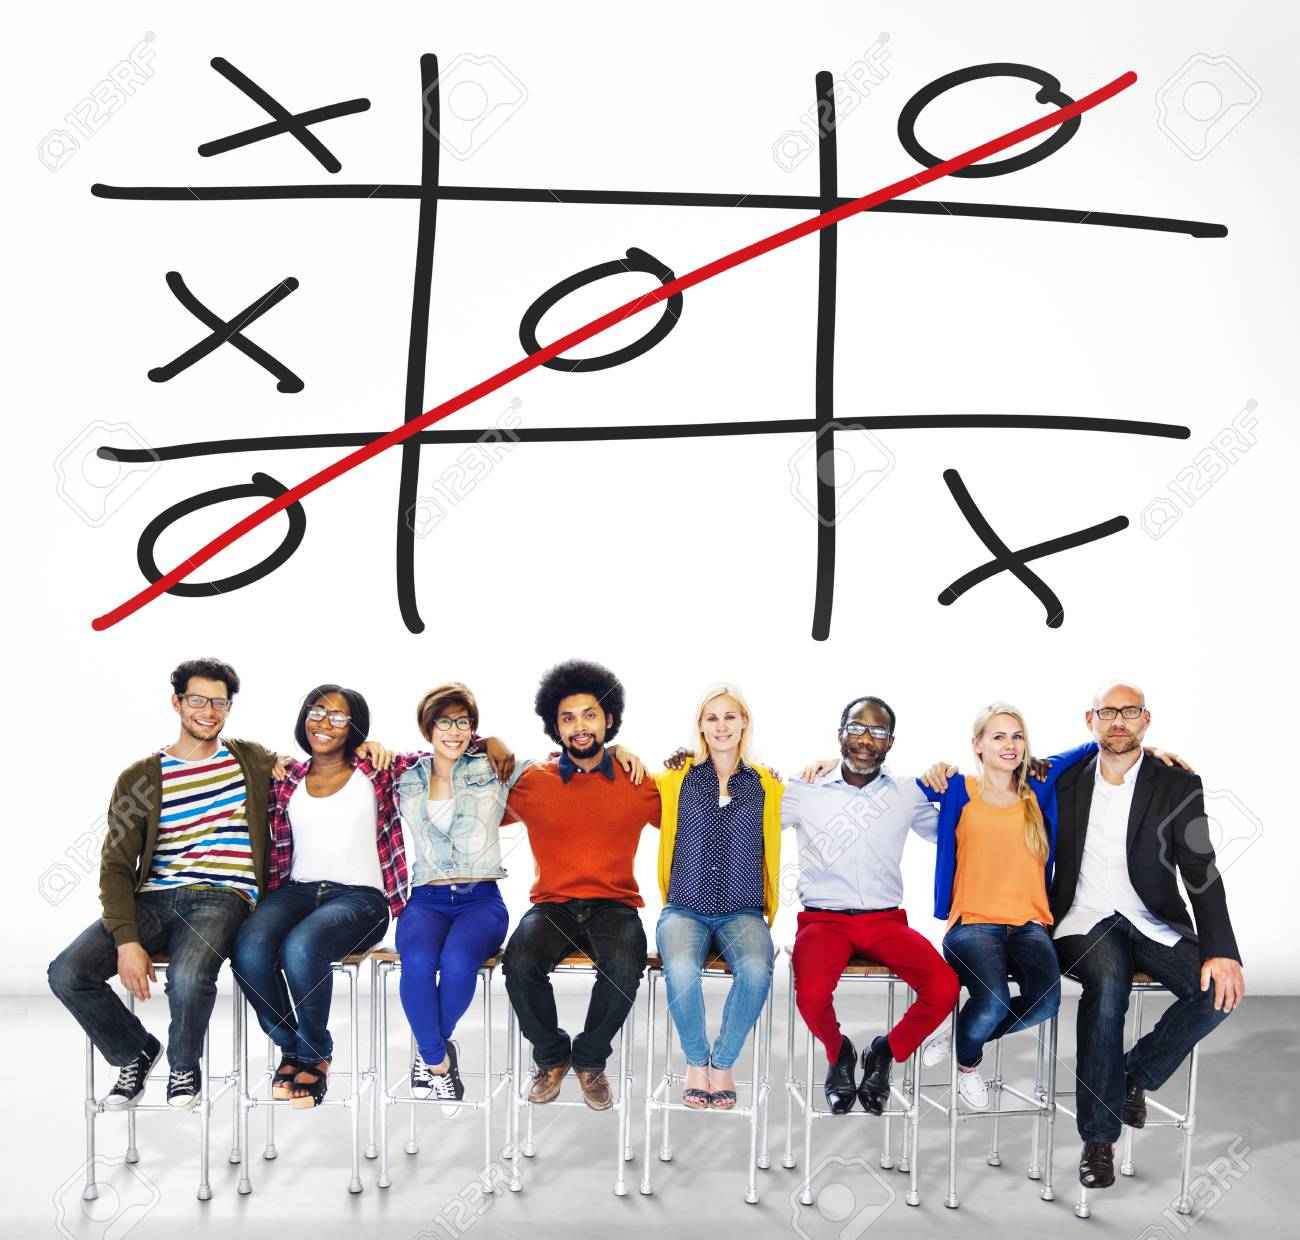 Tic Tac Toe Game Competition XO Win Challecge Concept Stock Photo